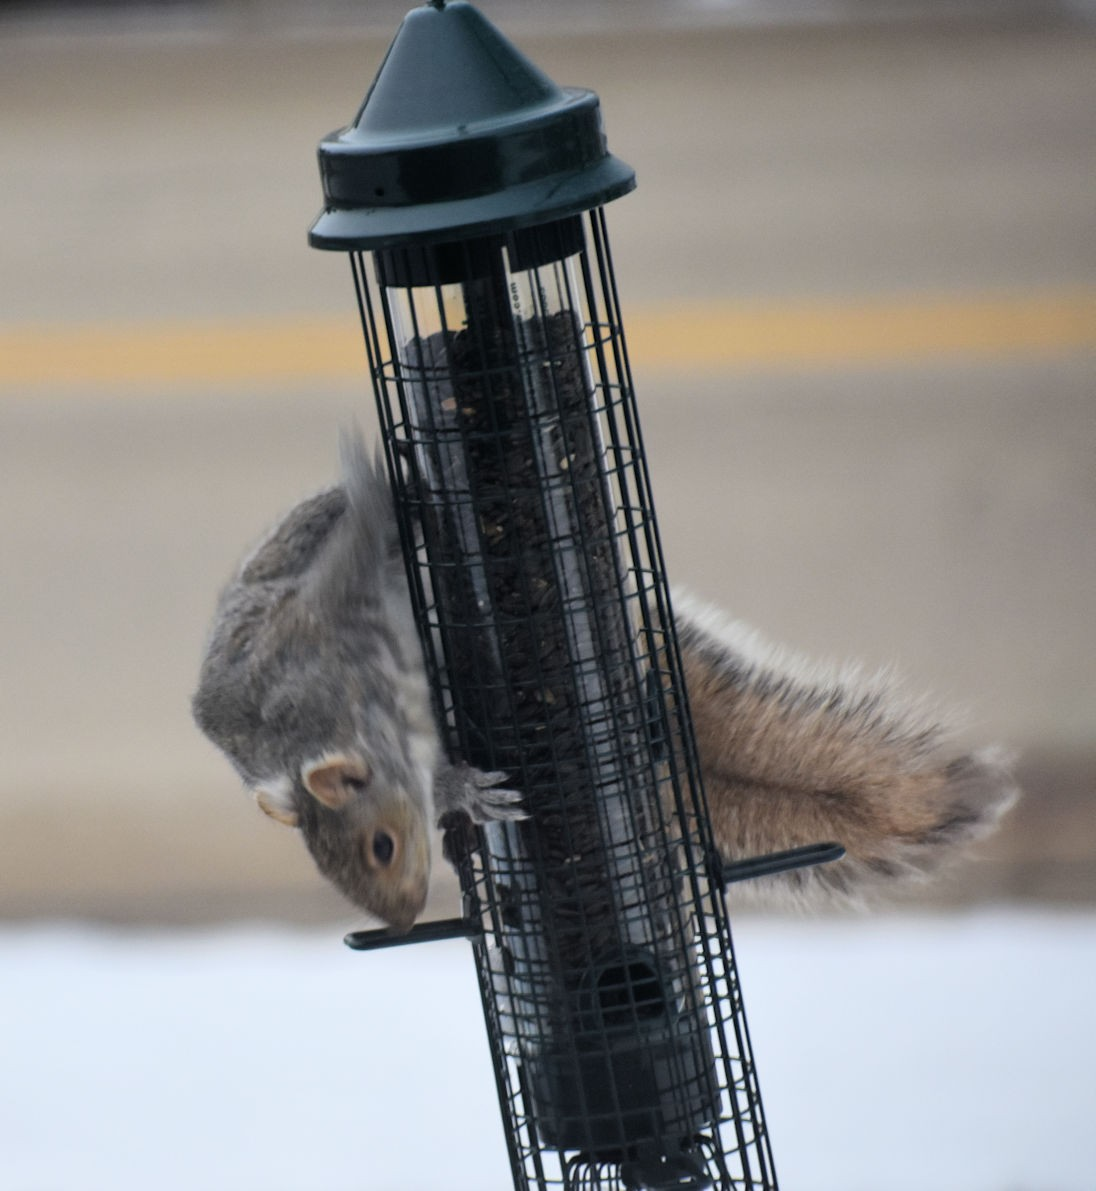 squirrel0880.jpg